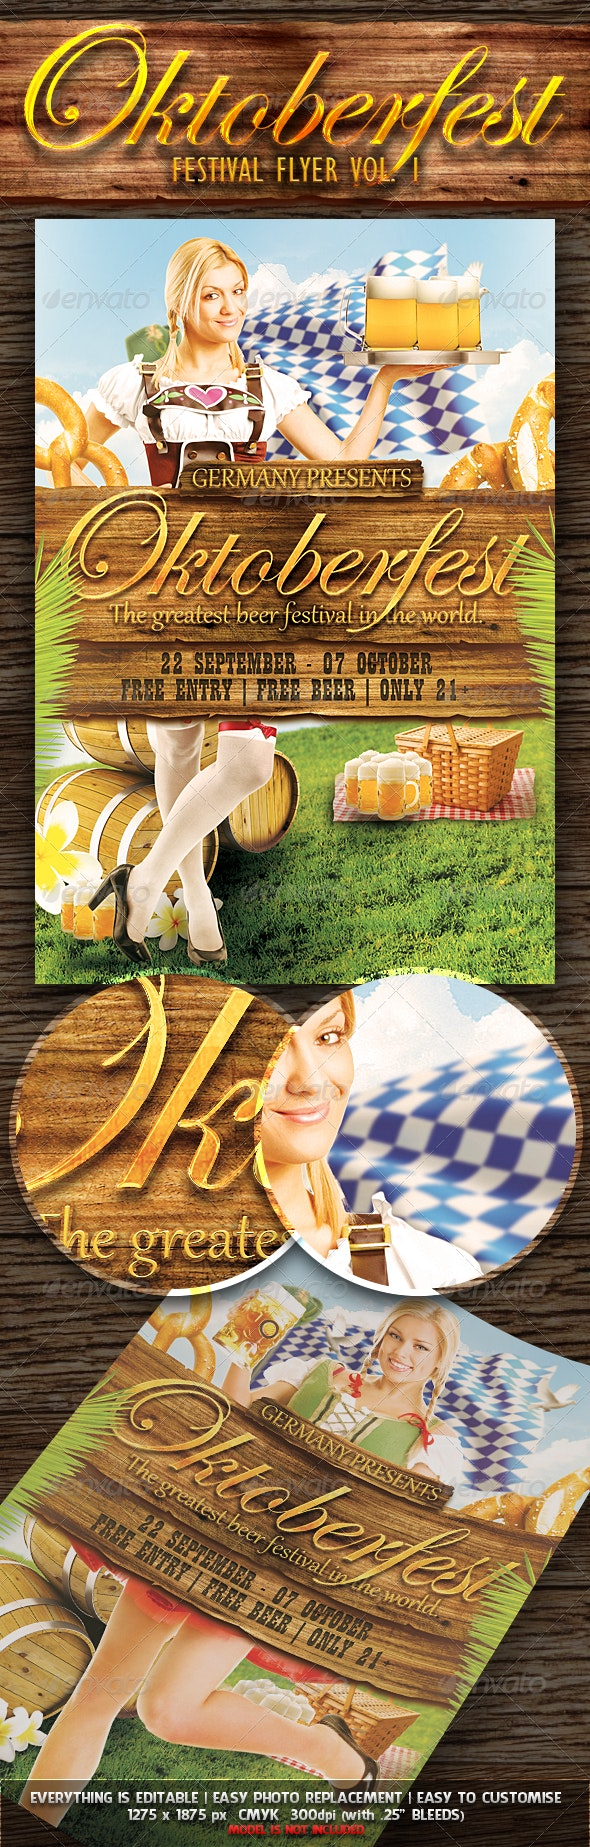 Oktoberfest Festival Flyer Vol. 1 - Miscellaneous Events